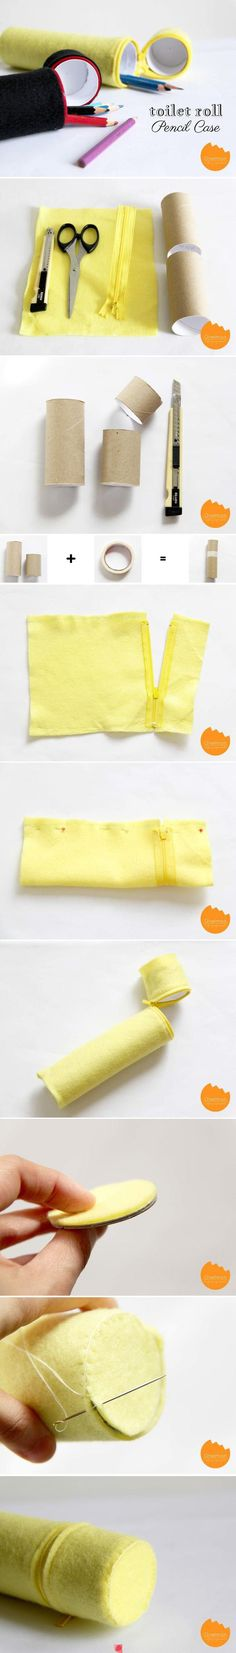 Porta lápis de tubo de papelão/ Recycled toilet paper rolls/ Repurpose into DIY pencil case